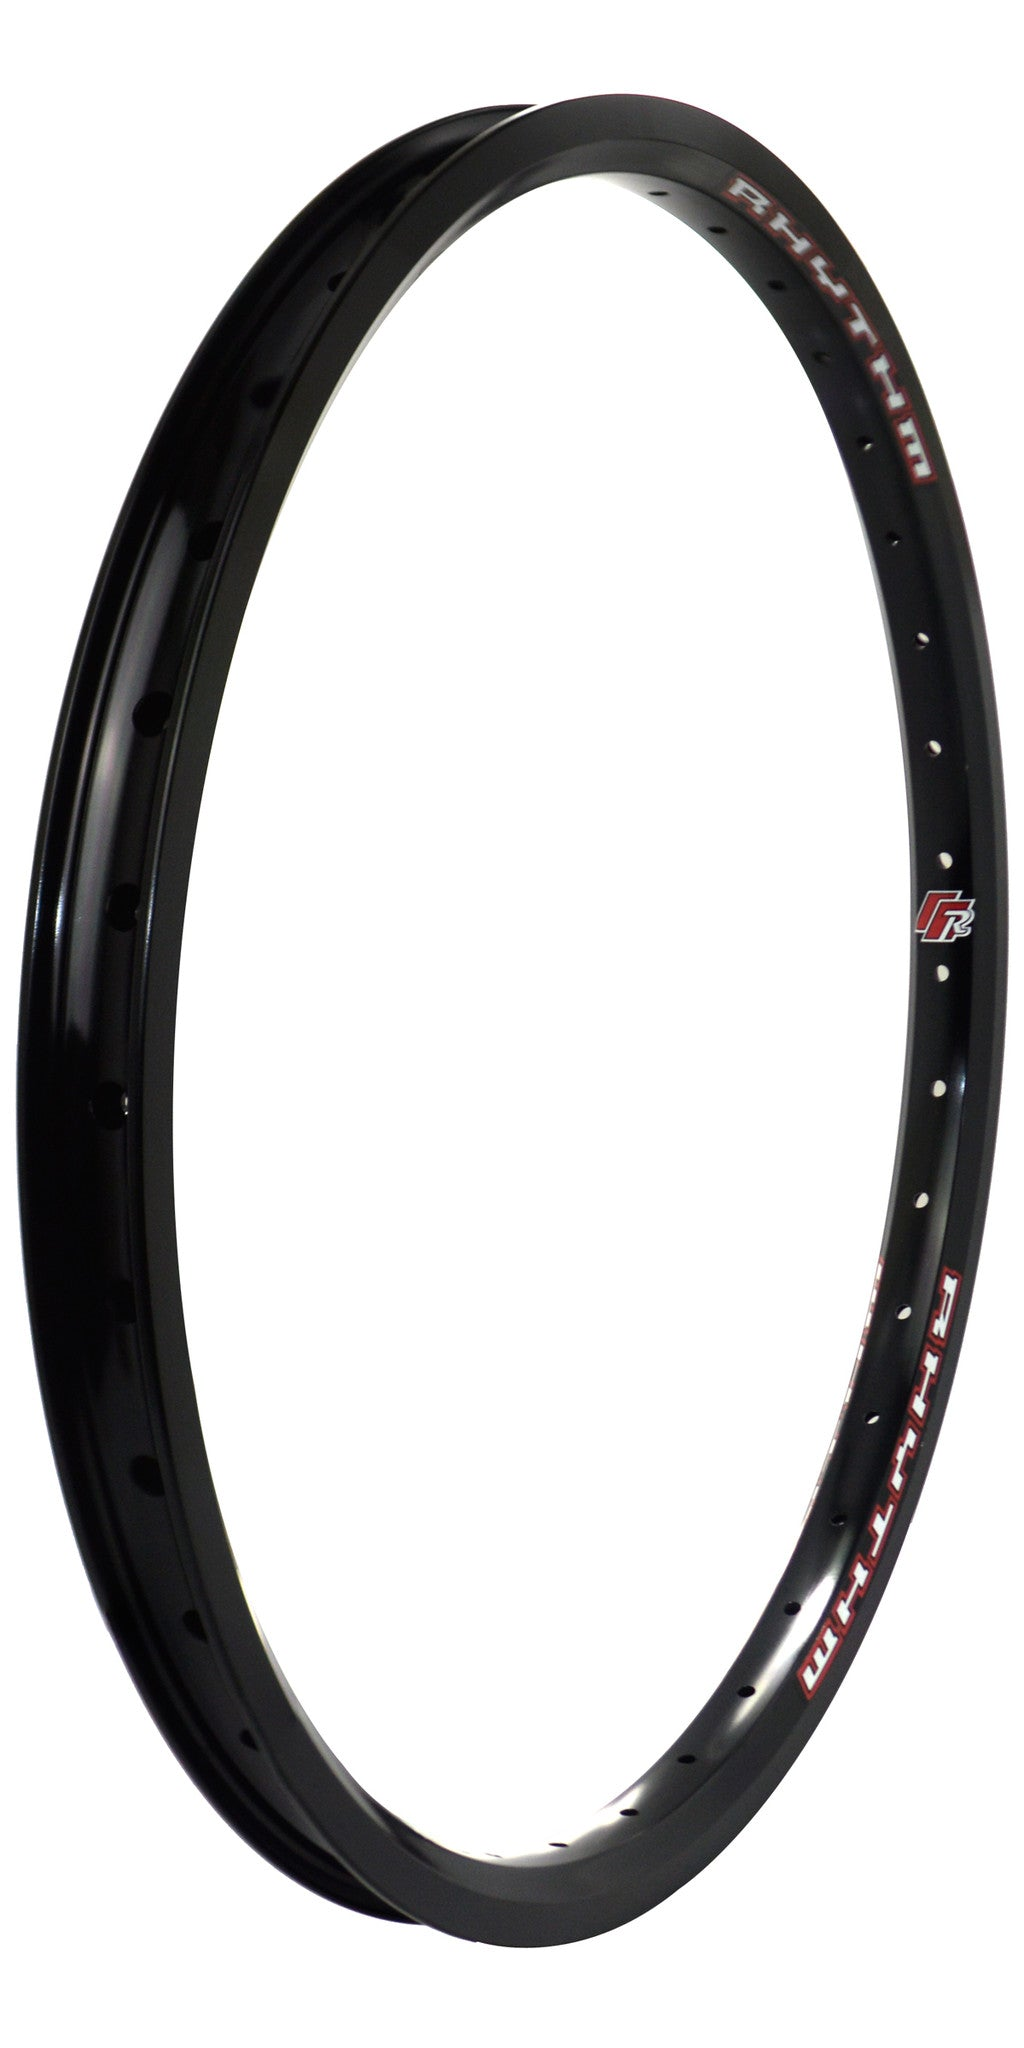 Rhythm Section Pro 20 x 1.75 Rims